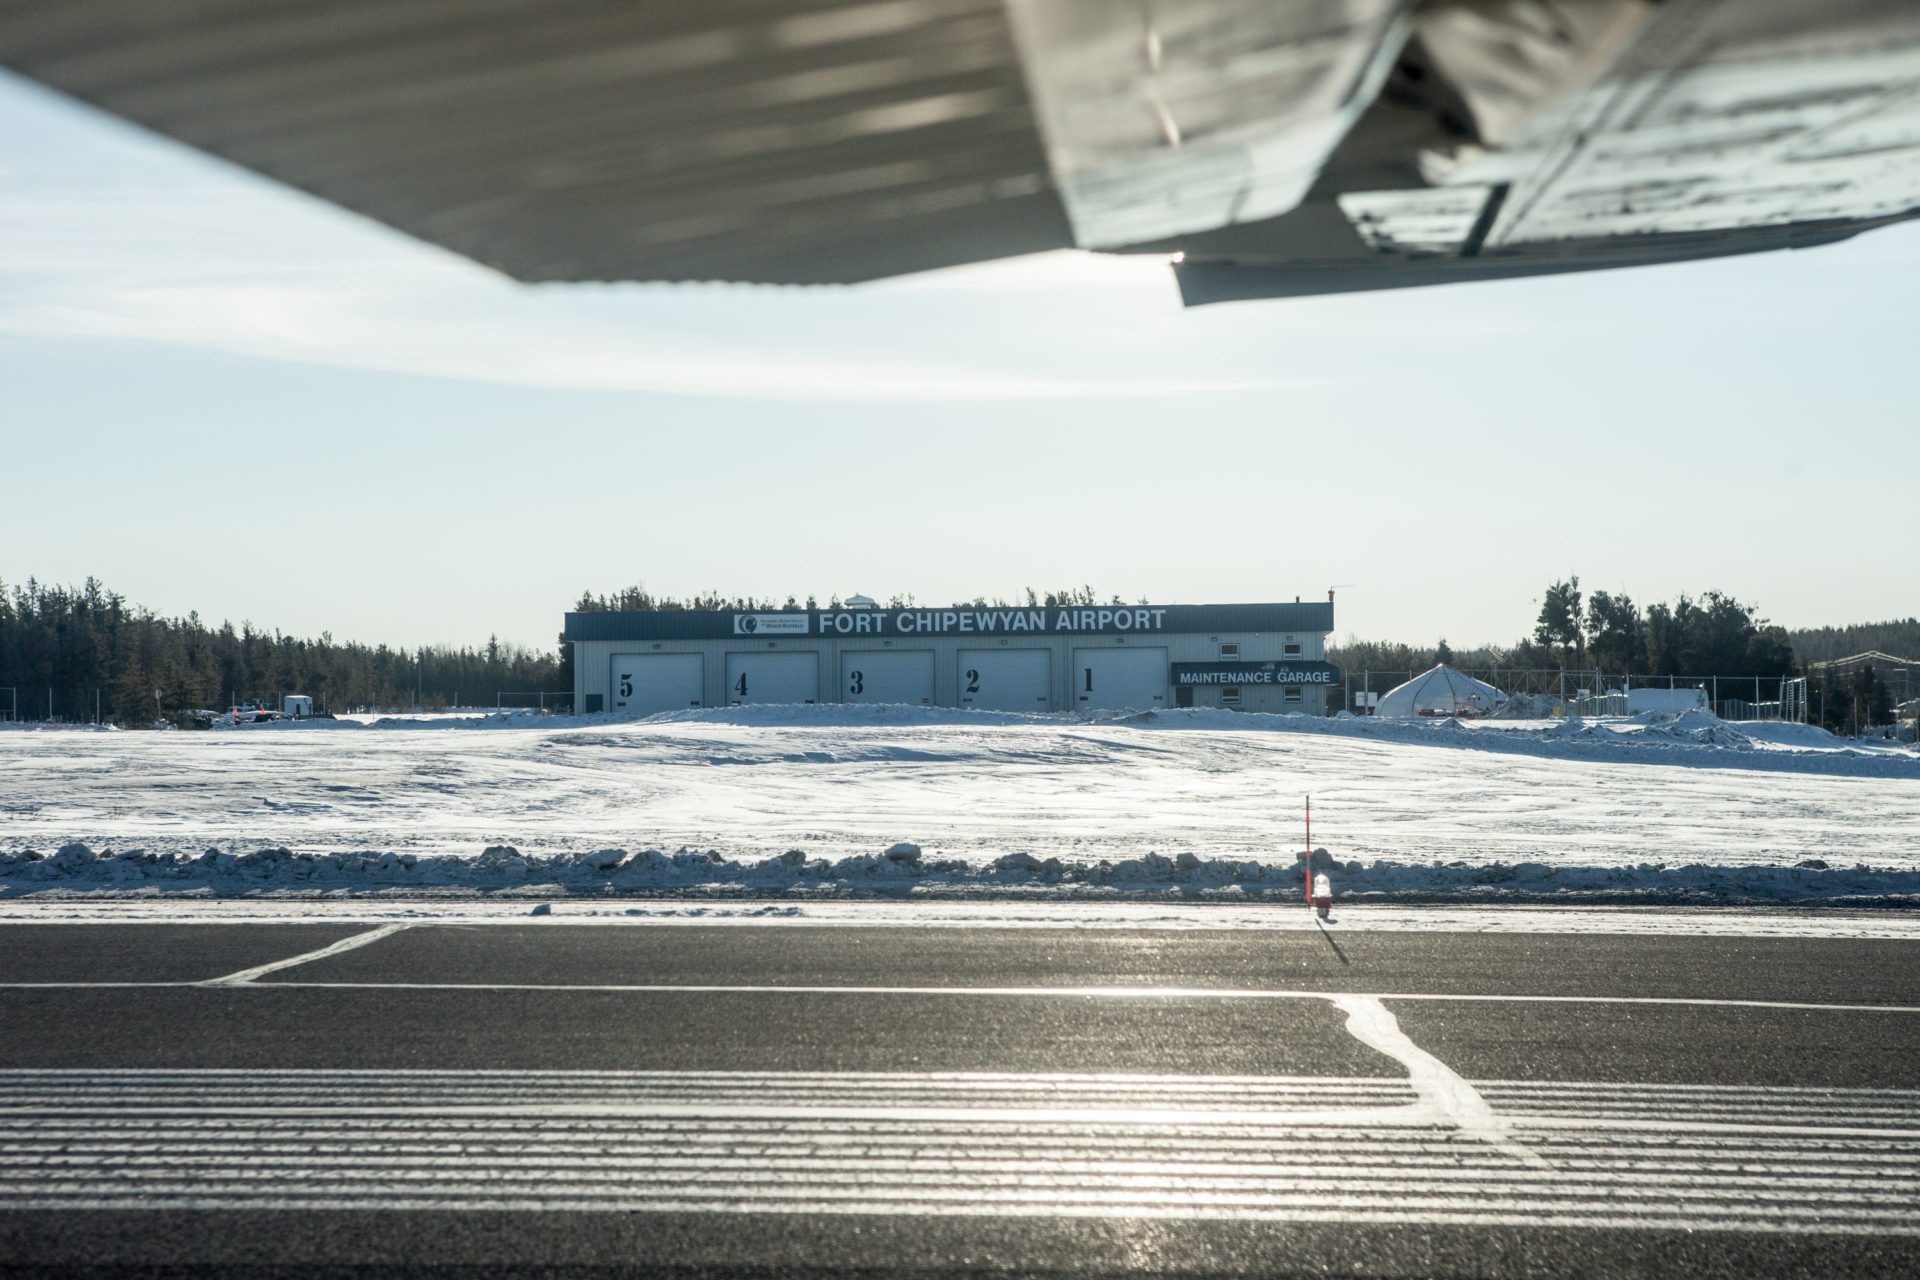 Fort Chipewyan Airport, Oilsands Cancer Story